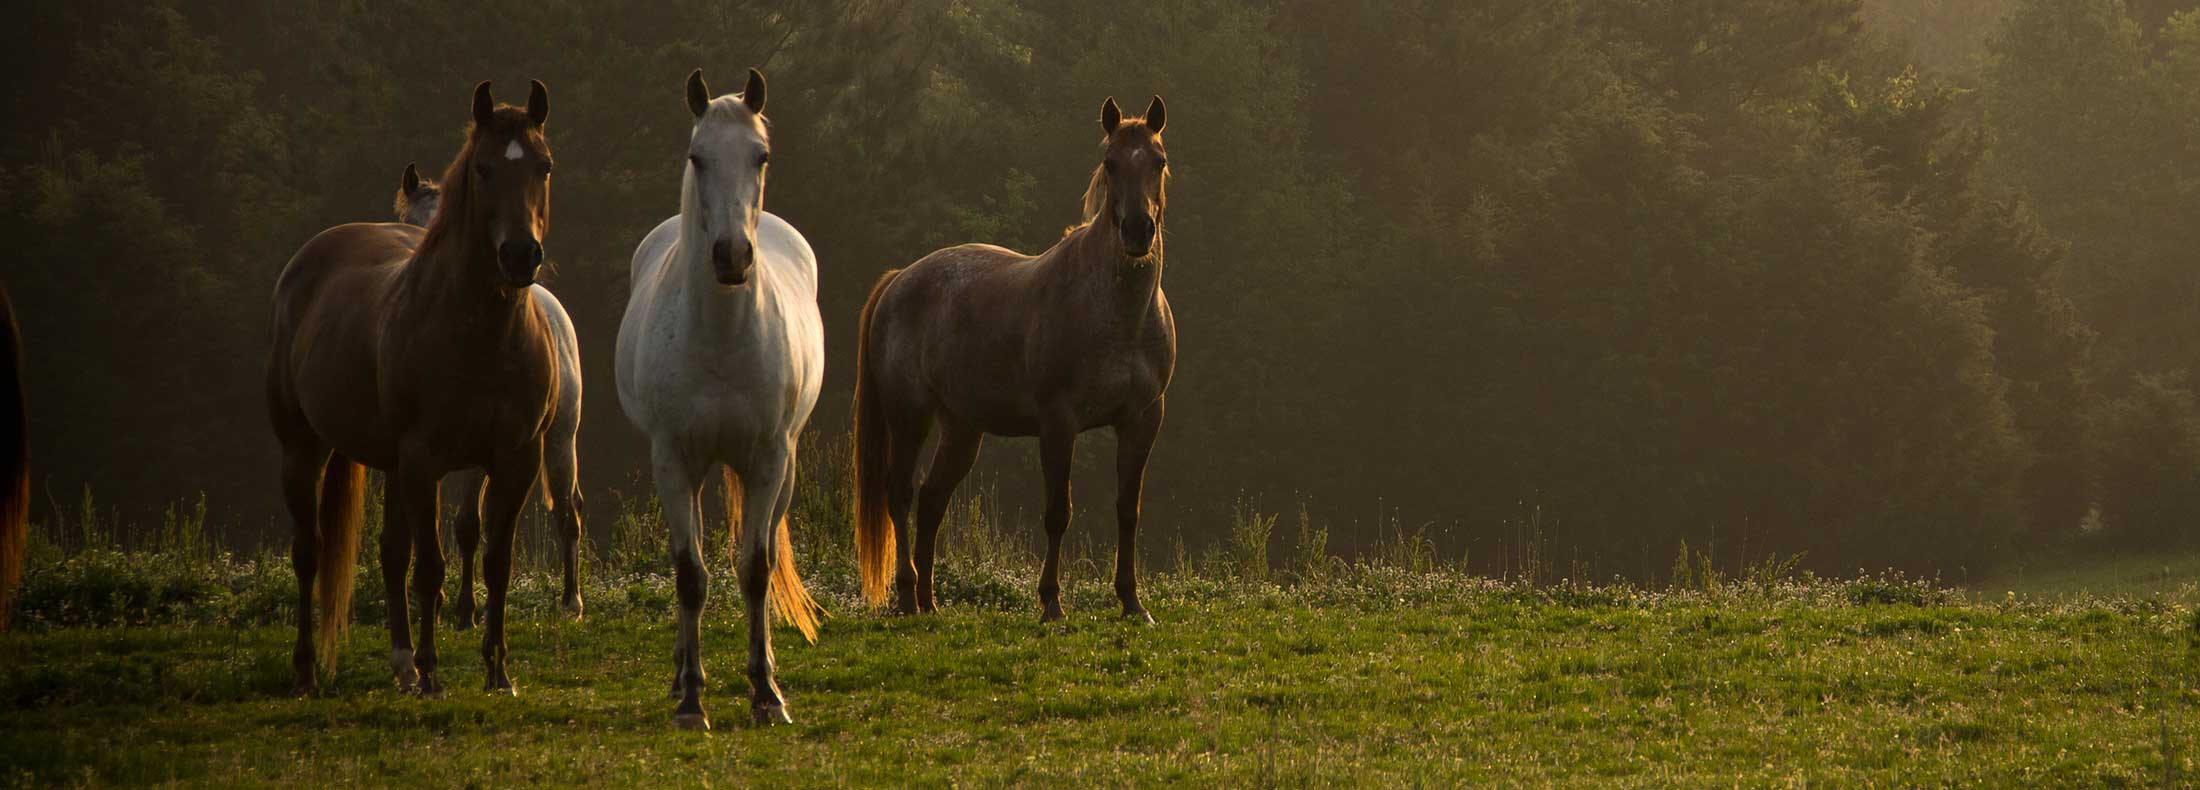 Three horses in atmospheric field